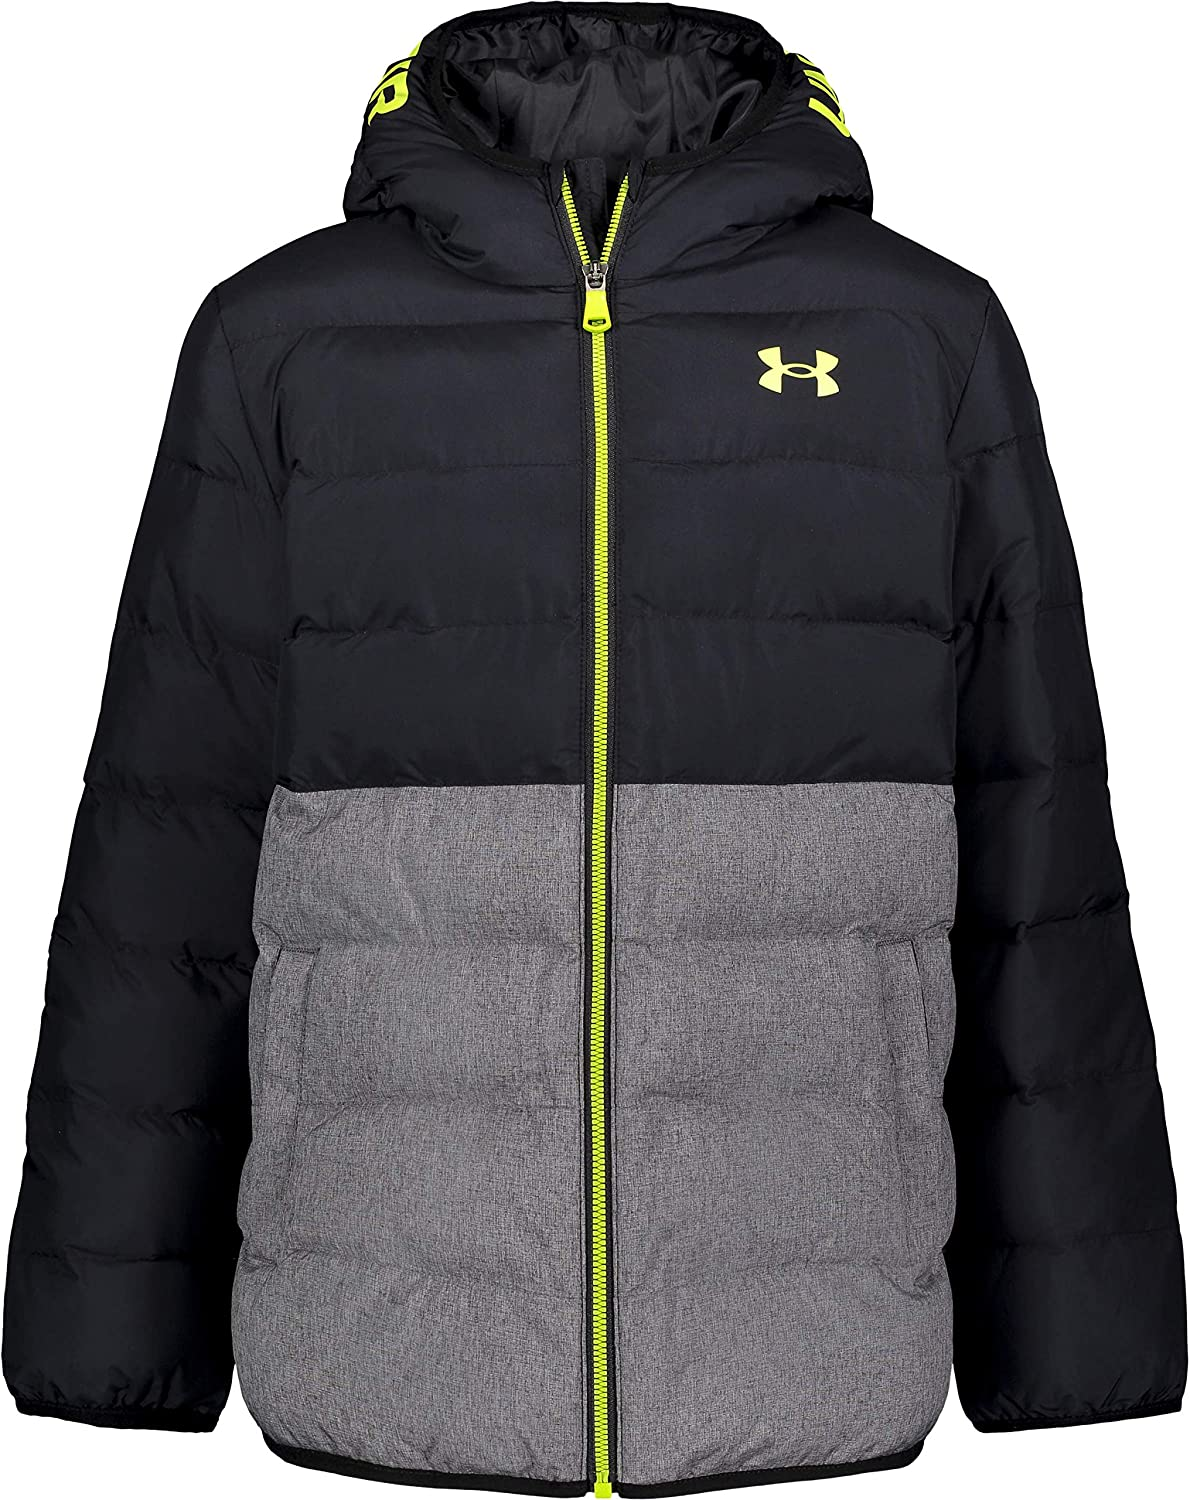 Under Armour Boys' Big Pronto Puffer Jacket: Clothing